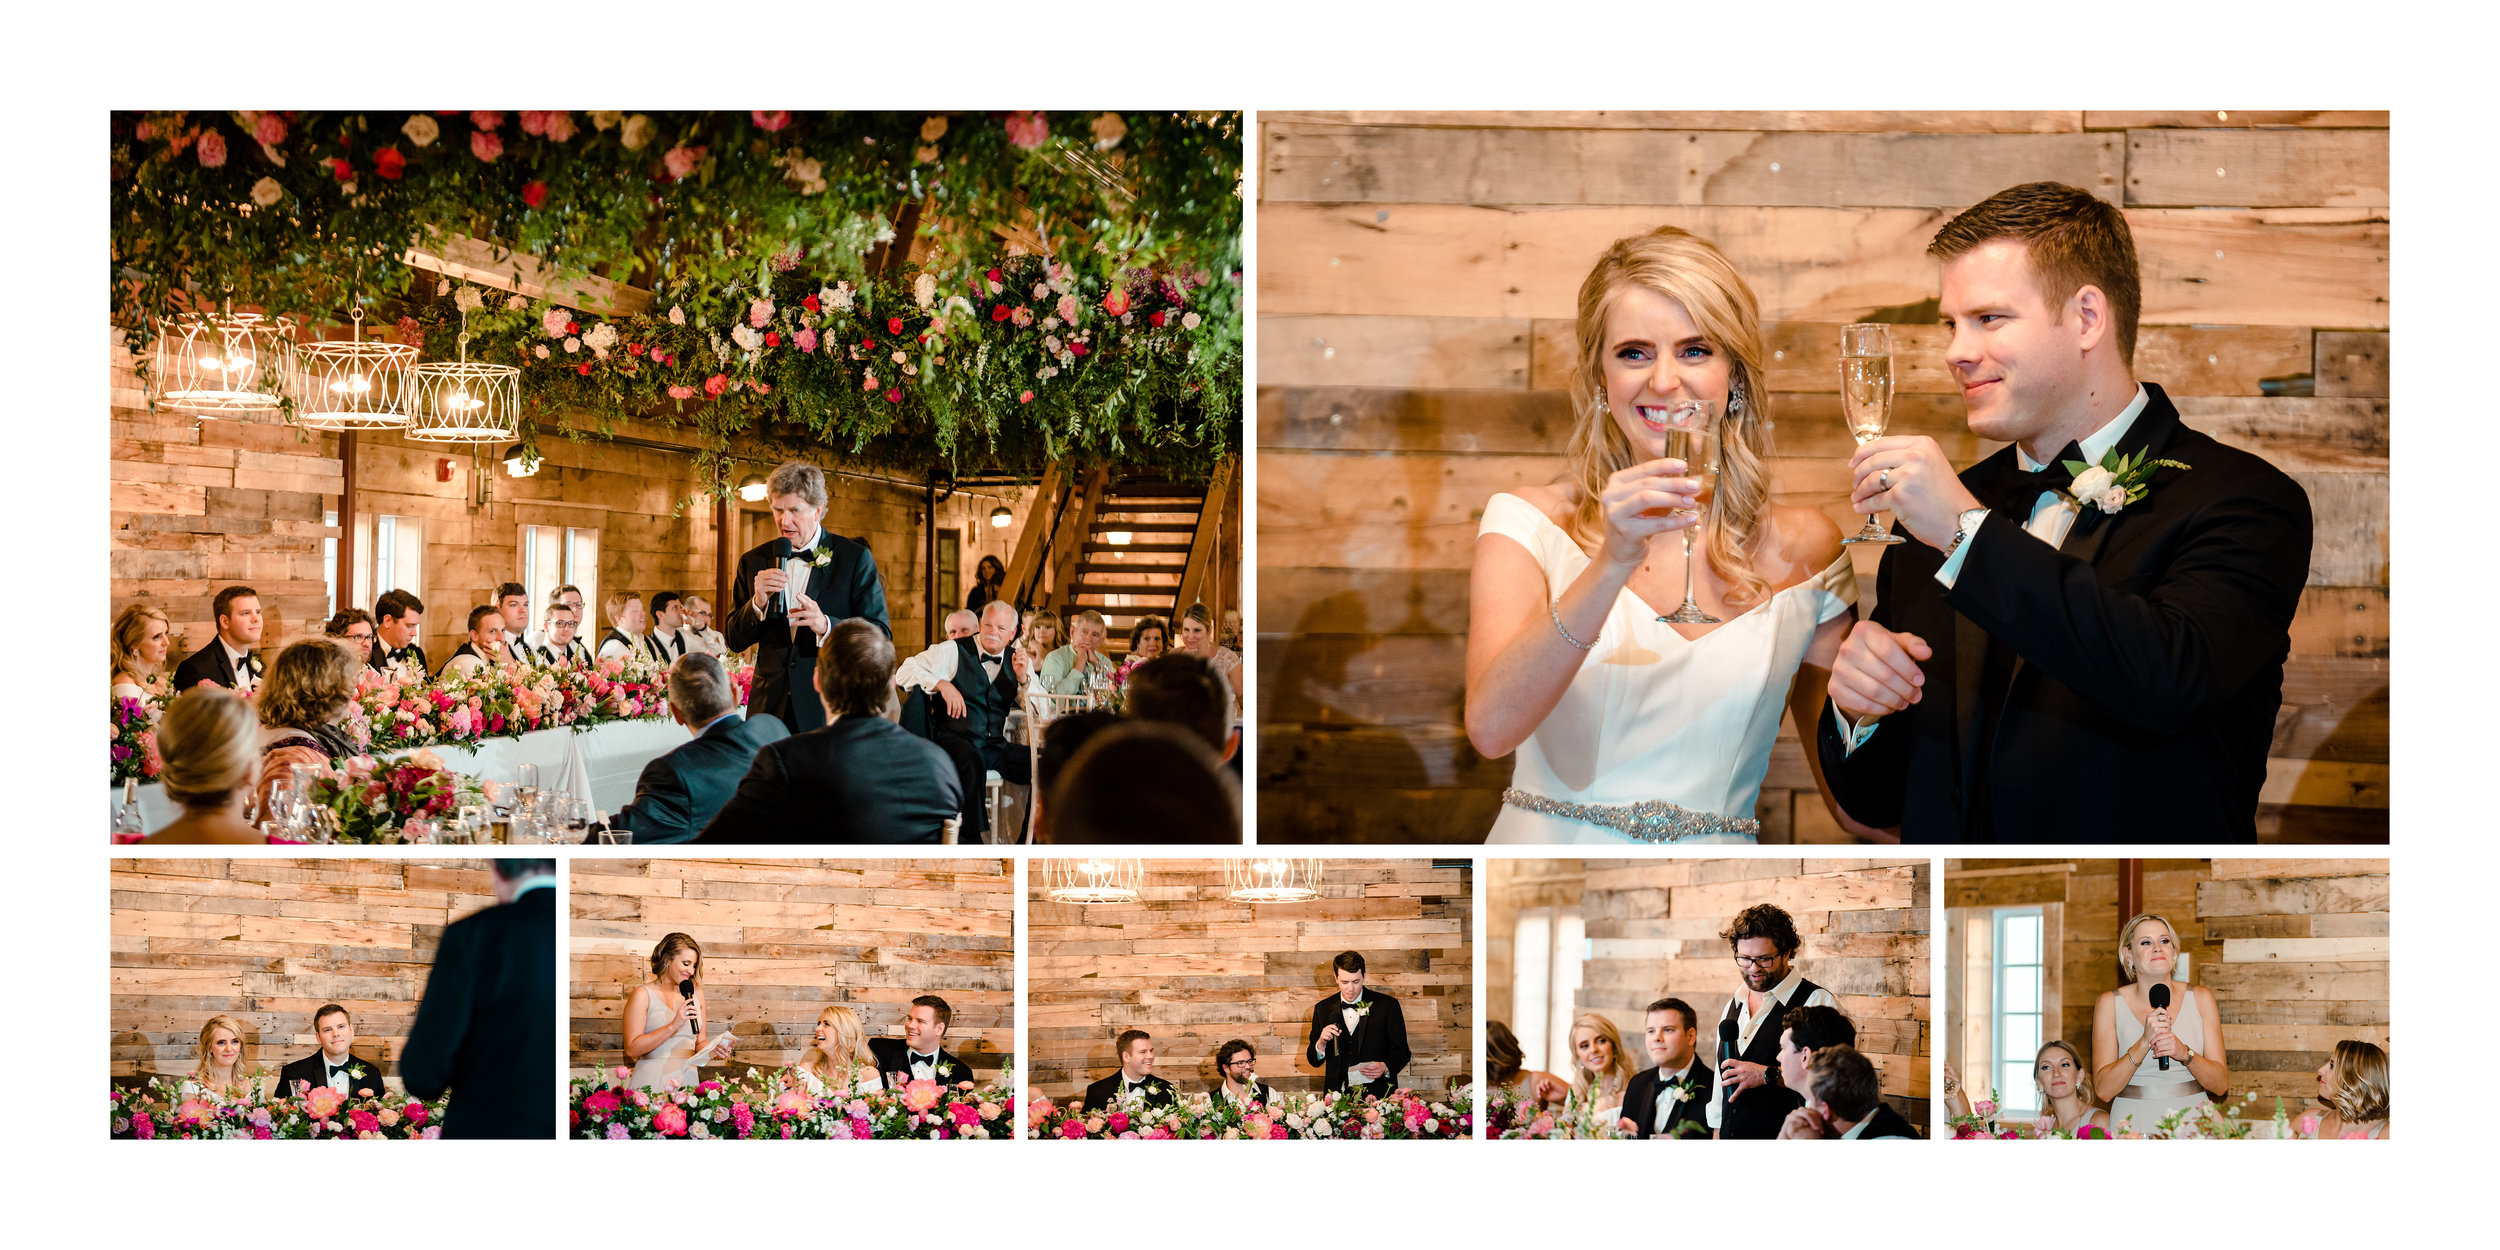 Amanda + Justin - Wedding Album_36.jpg